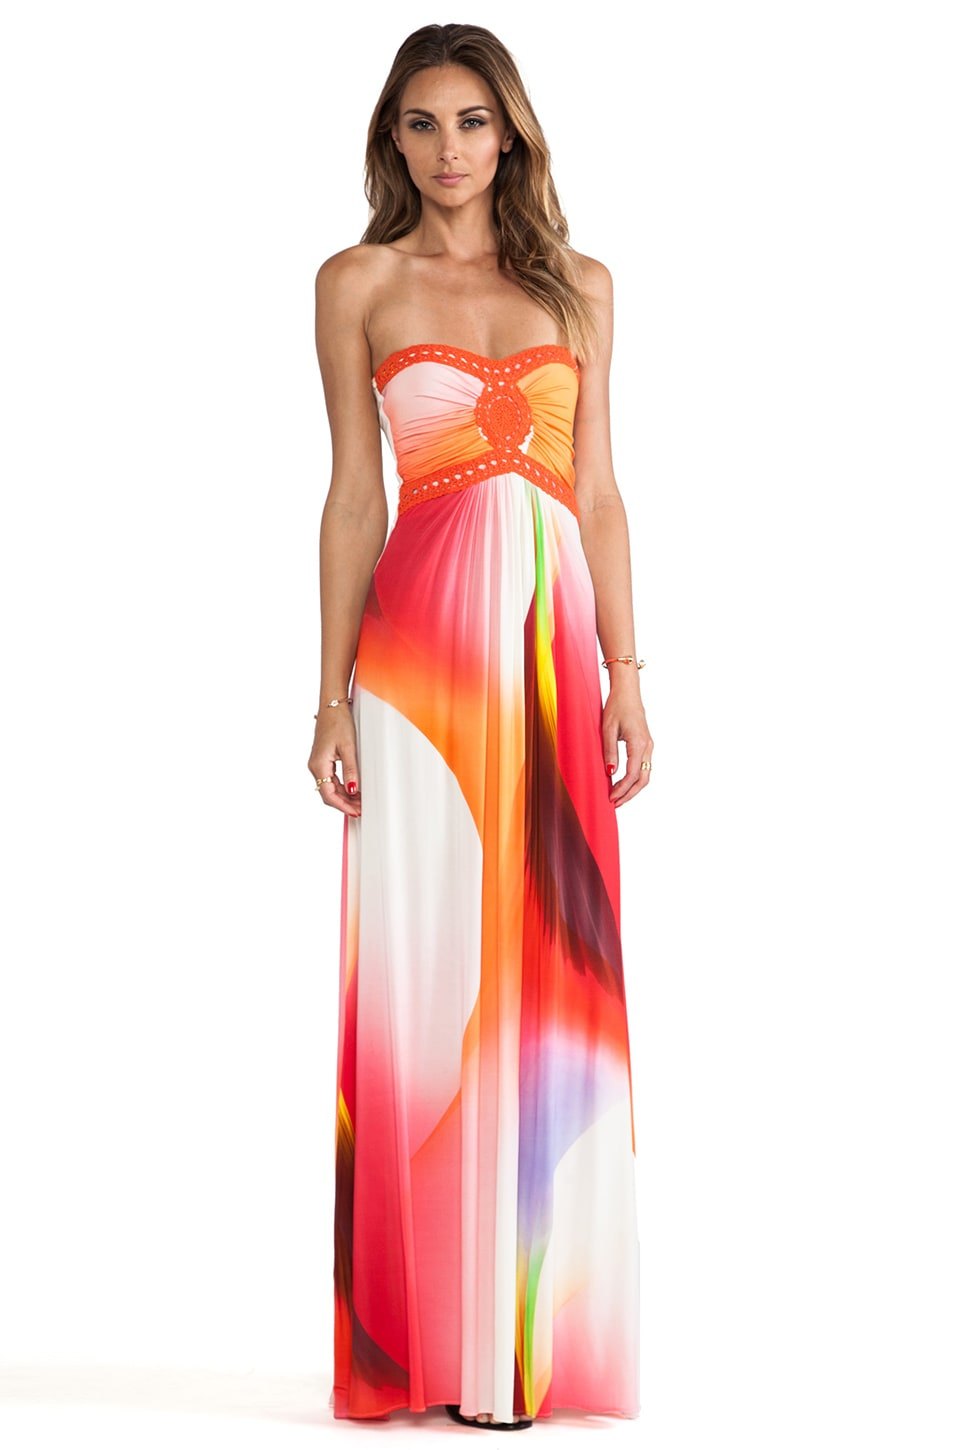 sky Sabi Strapless Dress in Coral